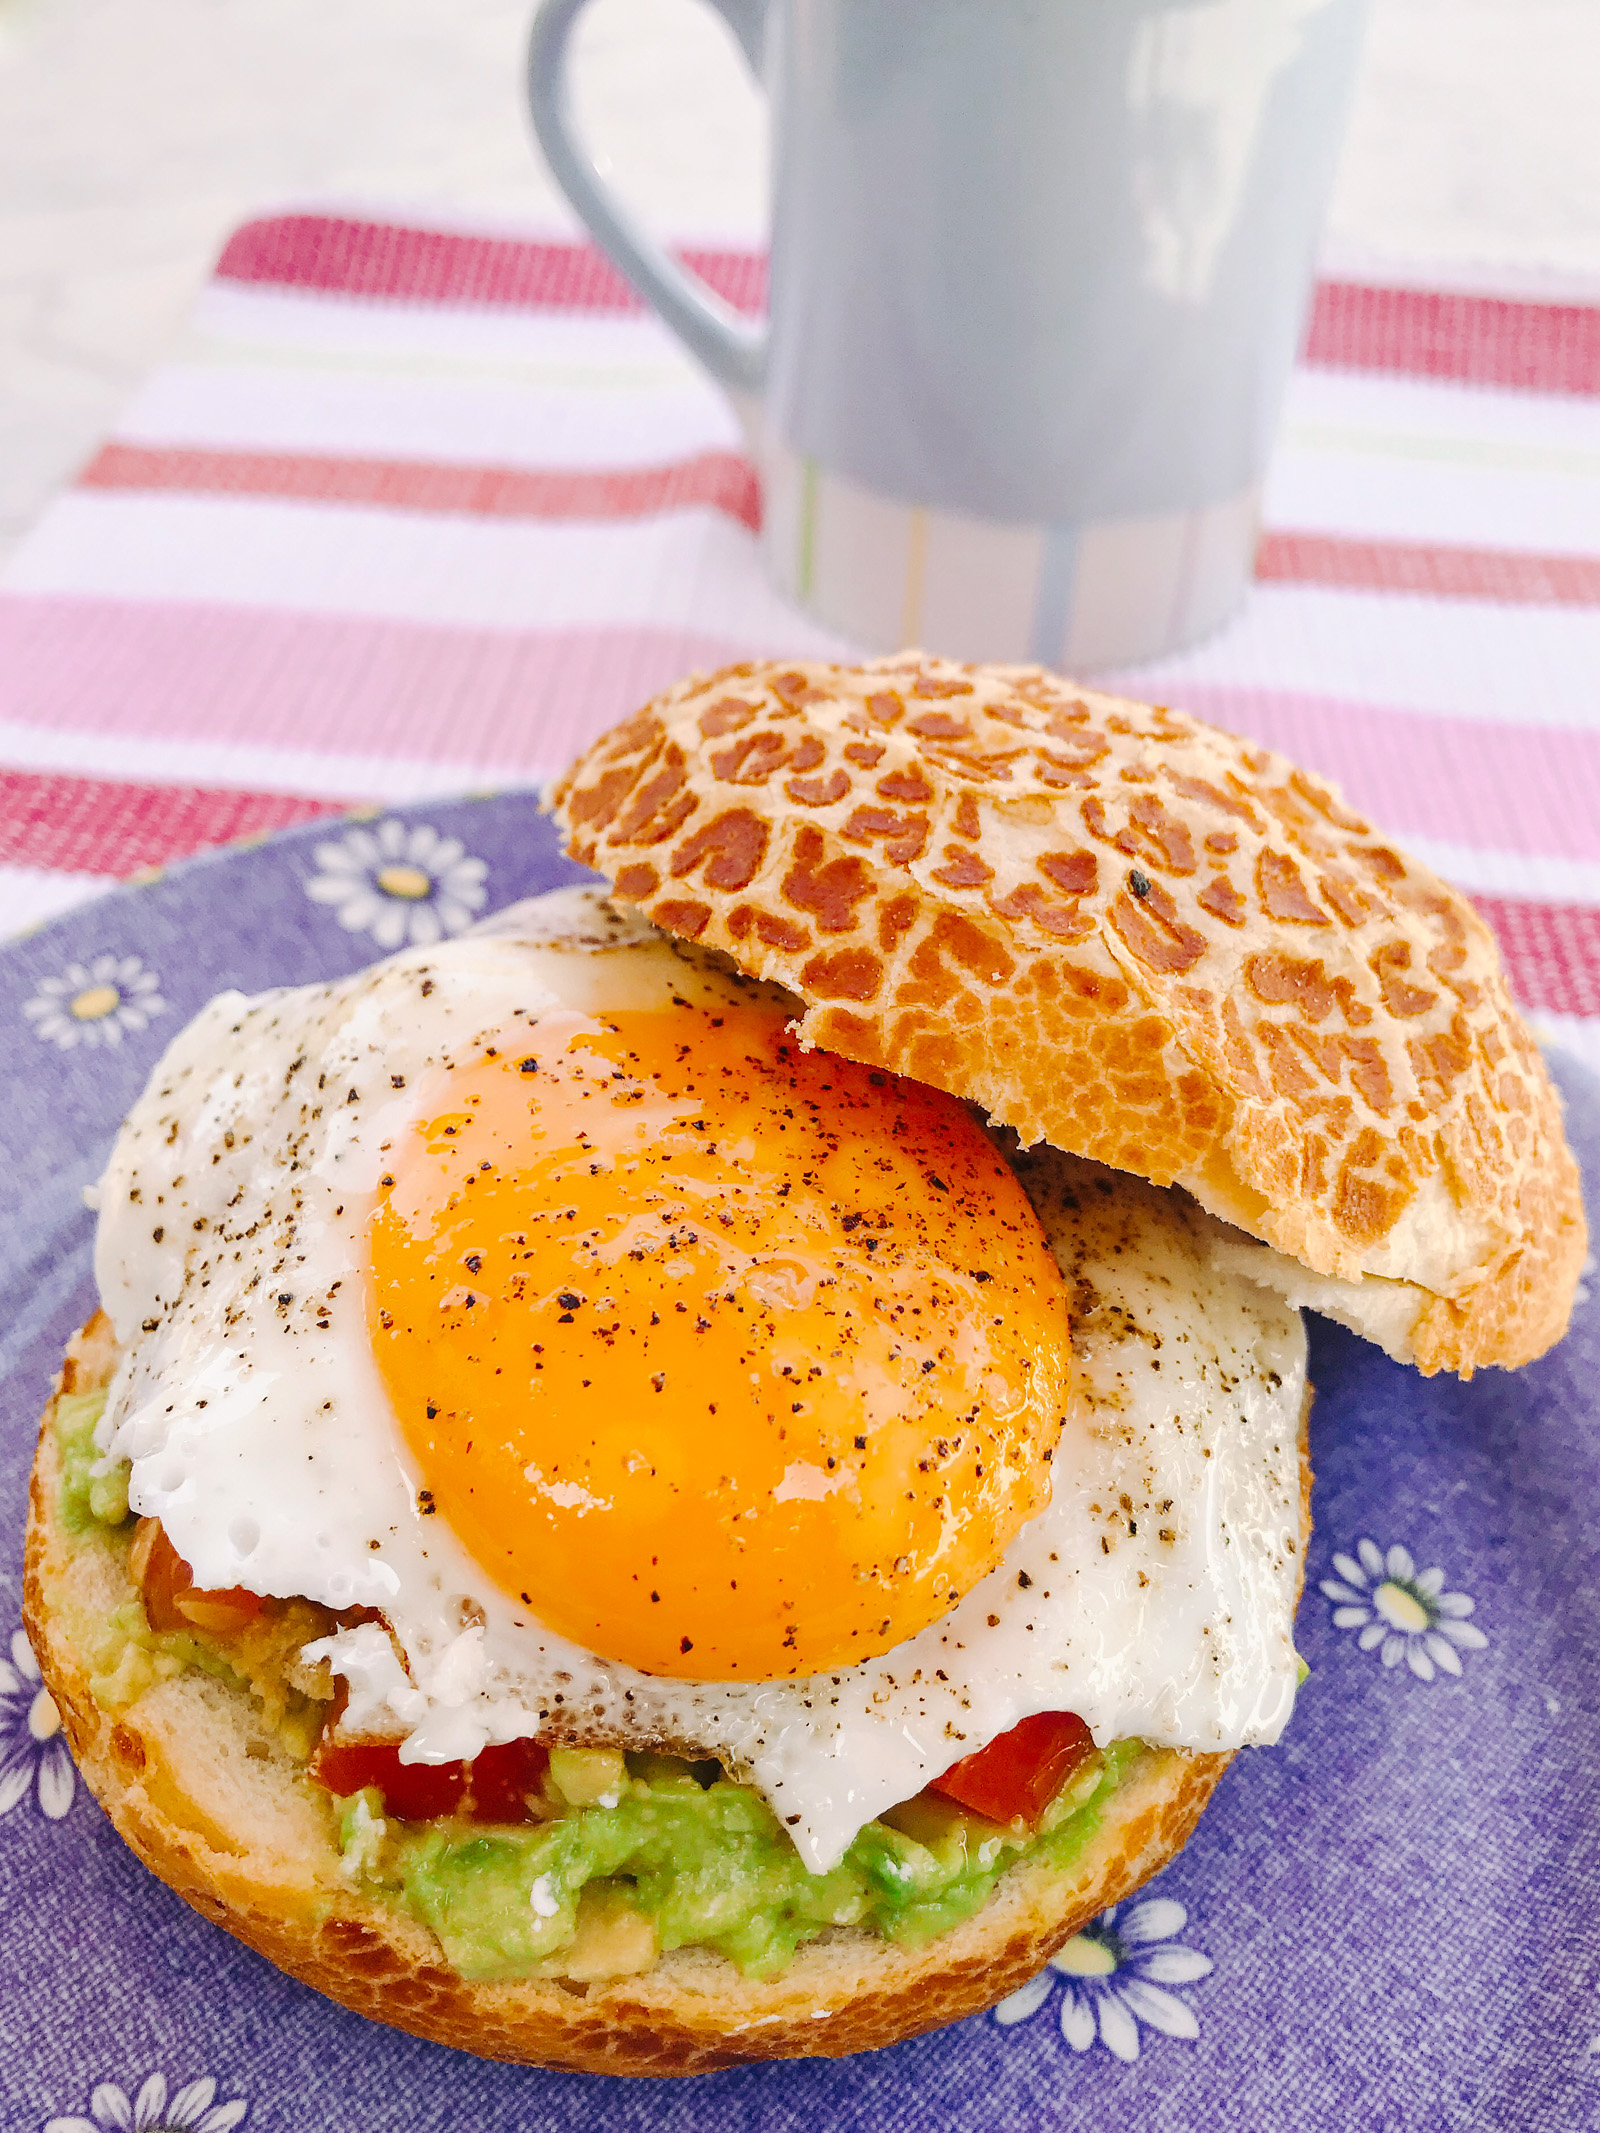 Avocado sandwich with goat cheese and sunny side up egg